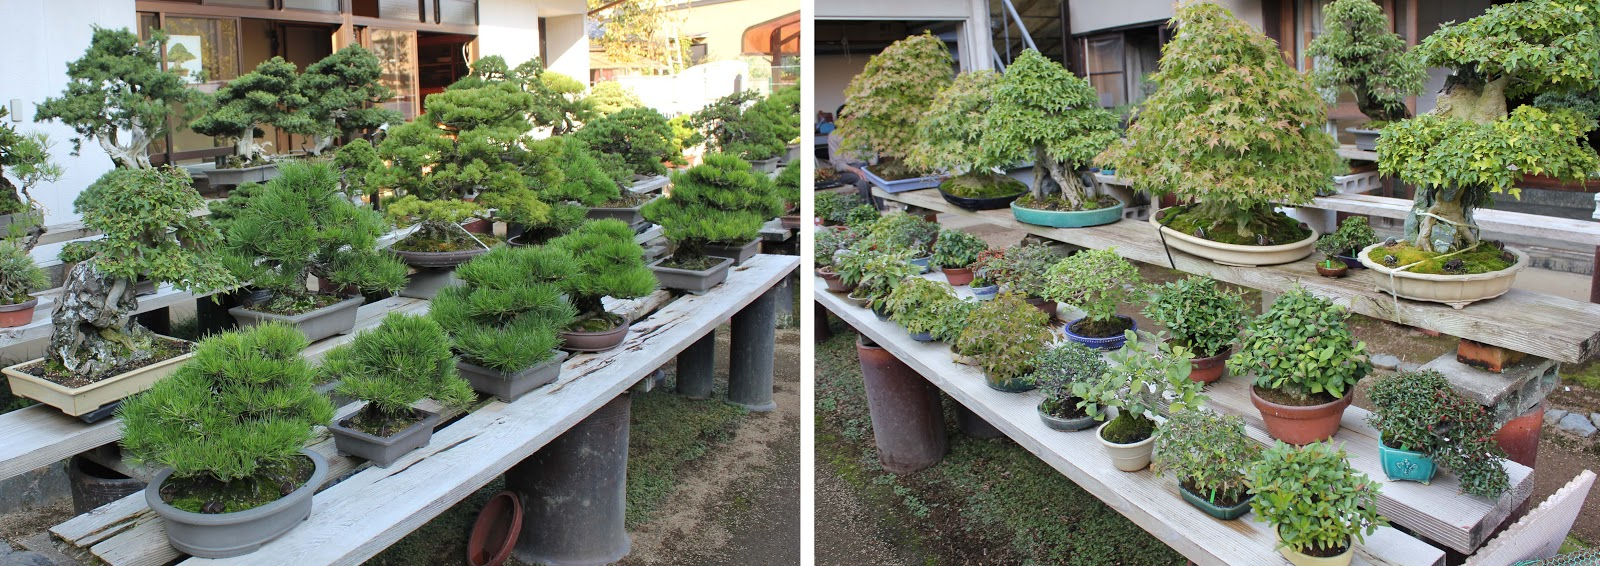 It Did Have Few Shohin Bonsai However Both Coniferous And Broadleaved Trees Were Equally Well Represented Images Below